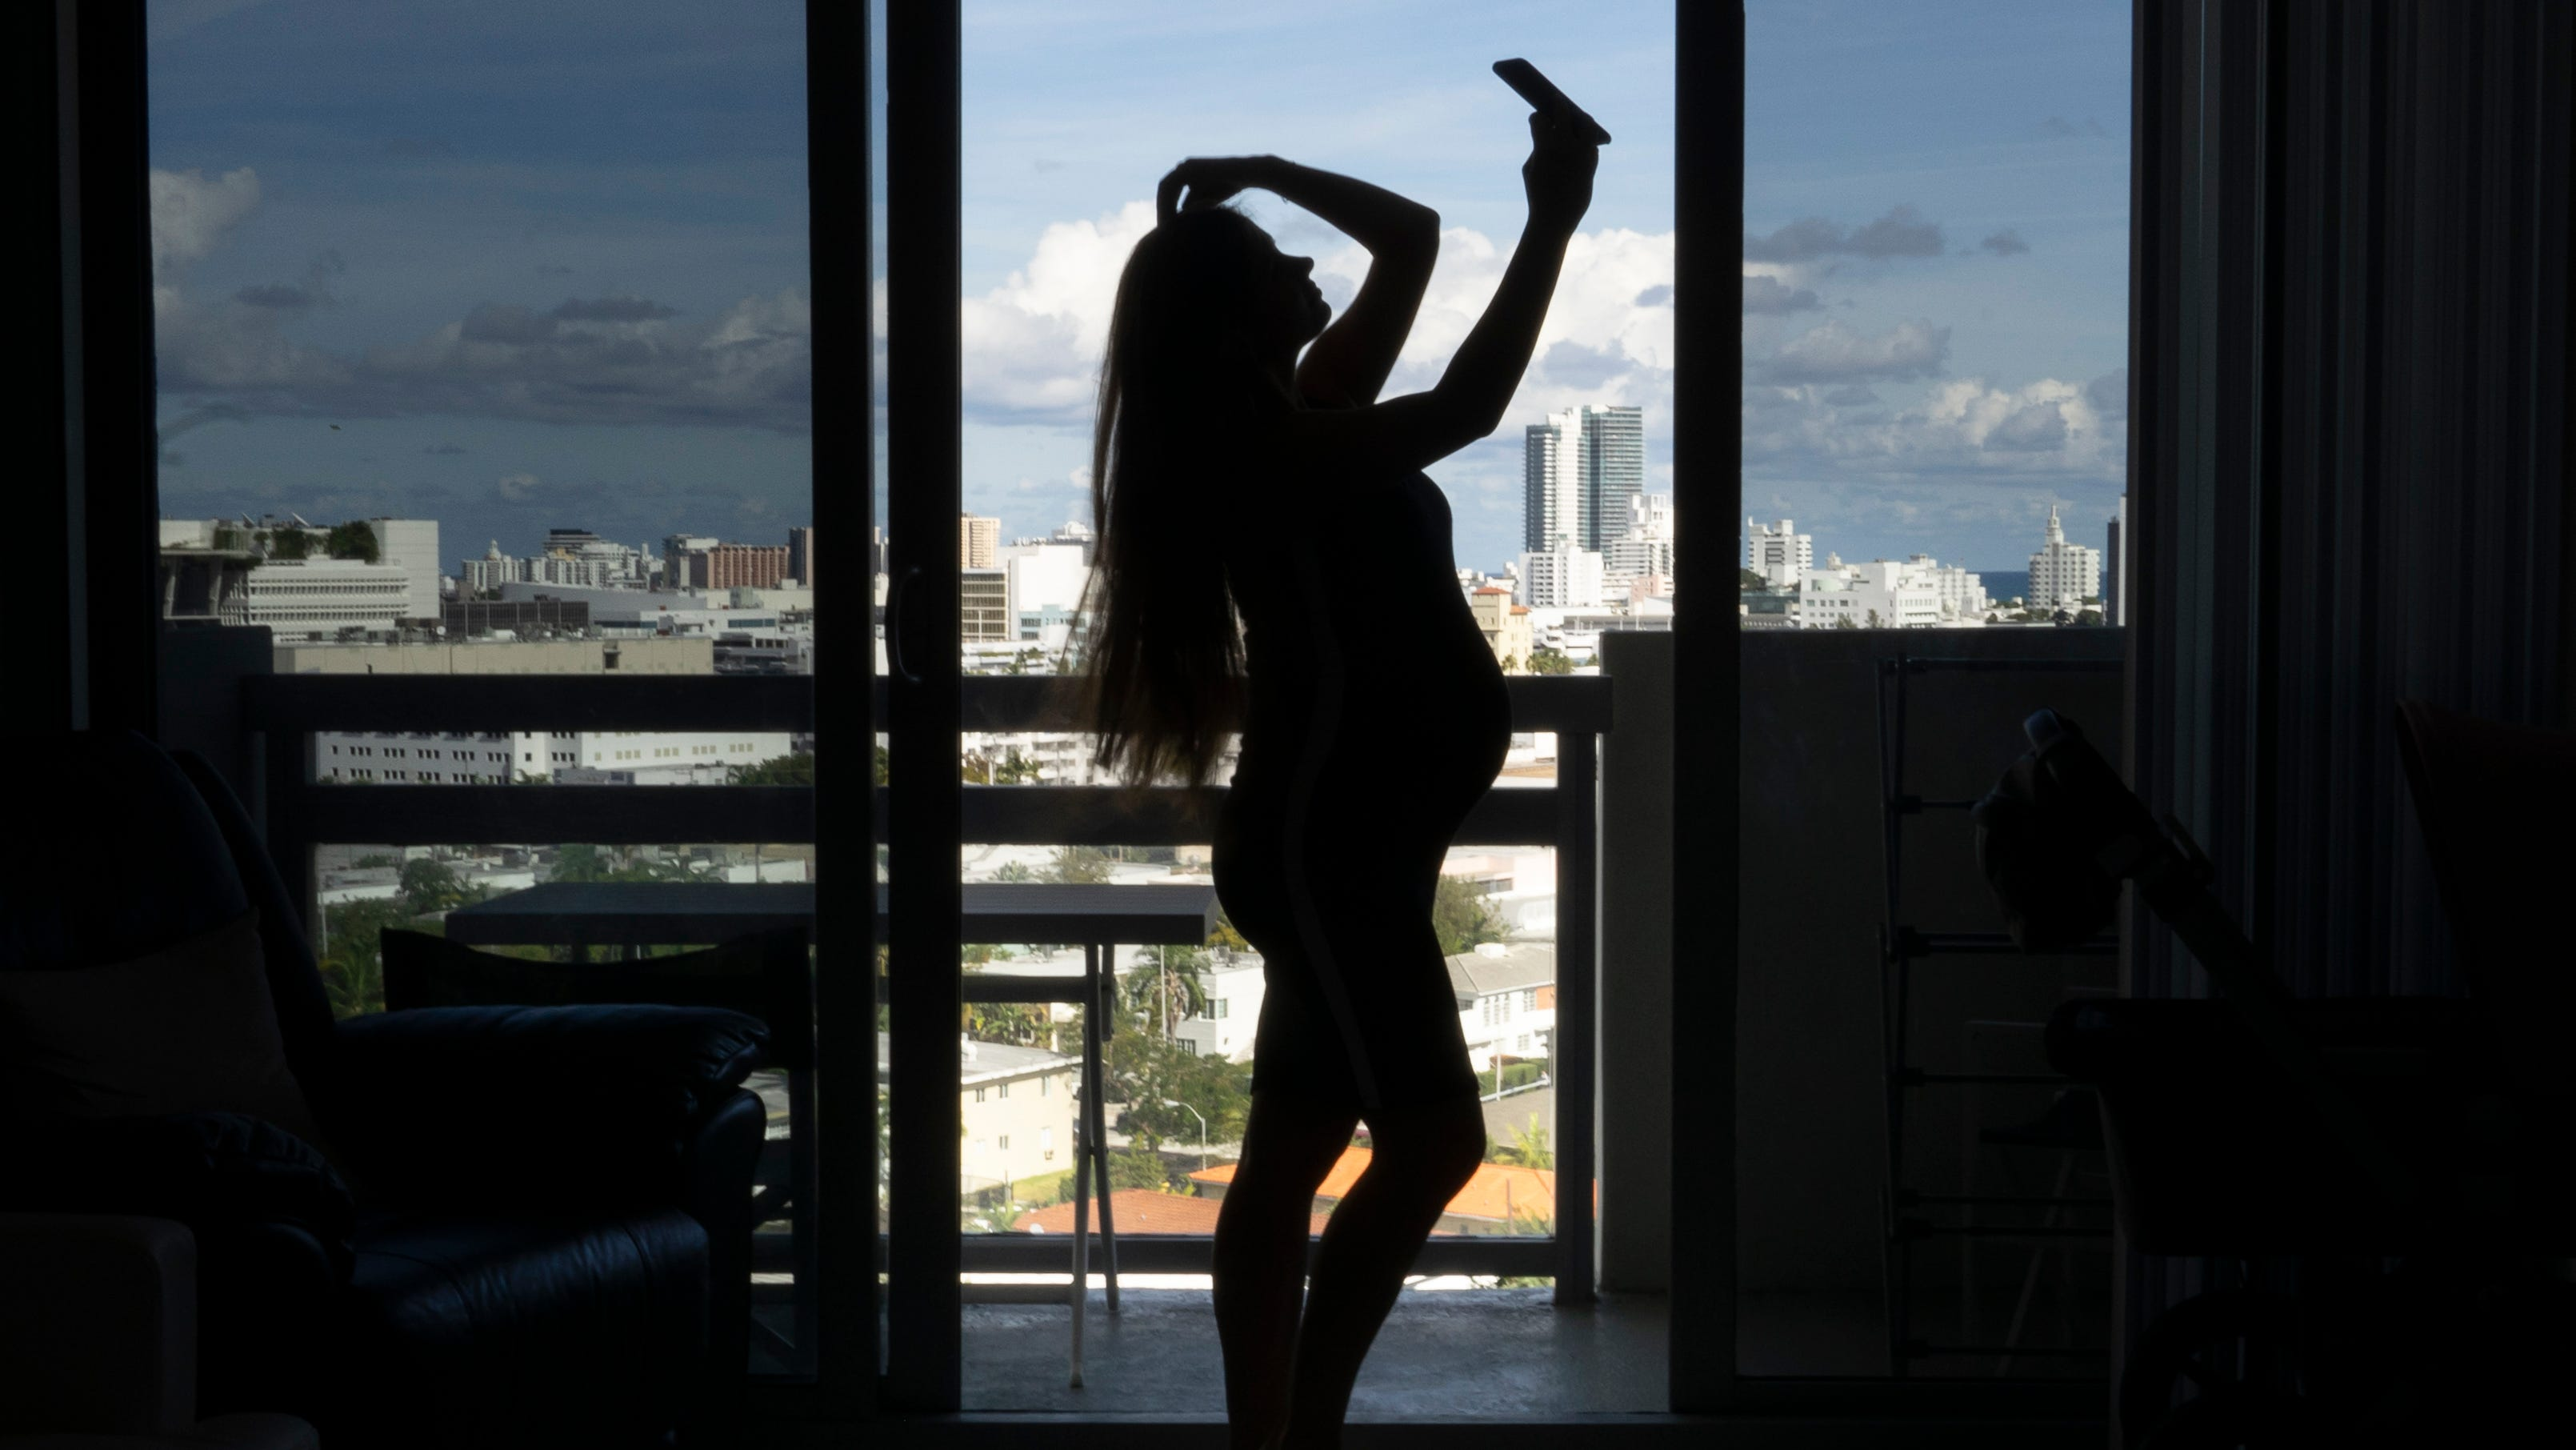 Svetlana Mokerova, 25, and her husband went all out, renting an apartment with a sweeping view. She relished the tropical vibe, filling her Instagram account with selfies backed by palm trees and ocean vistas.